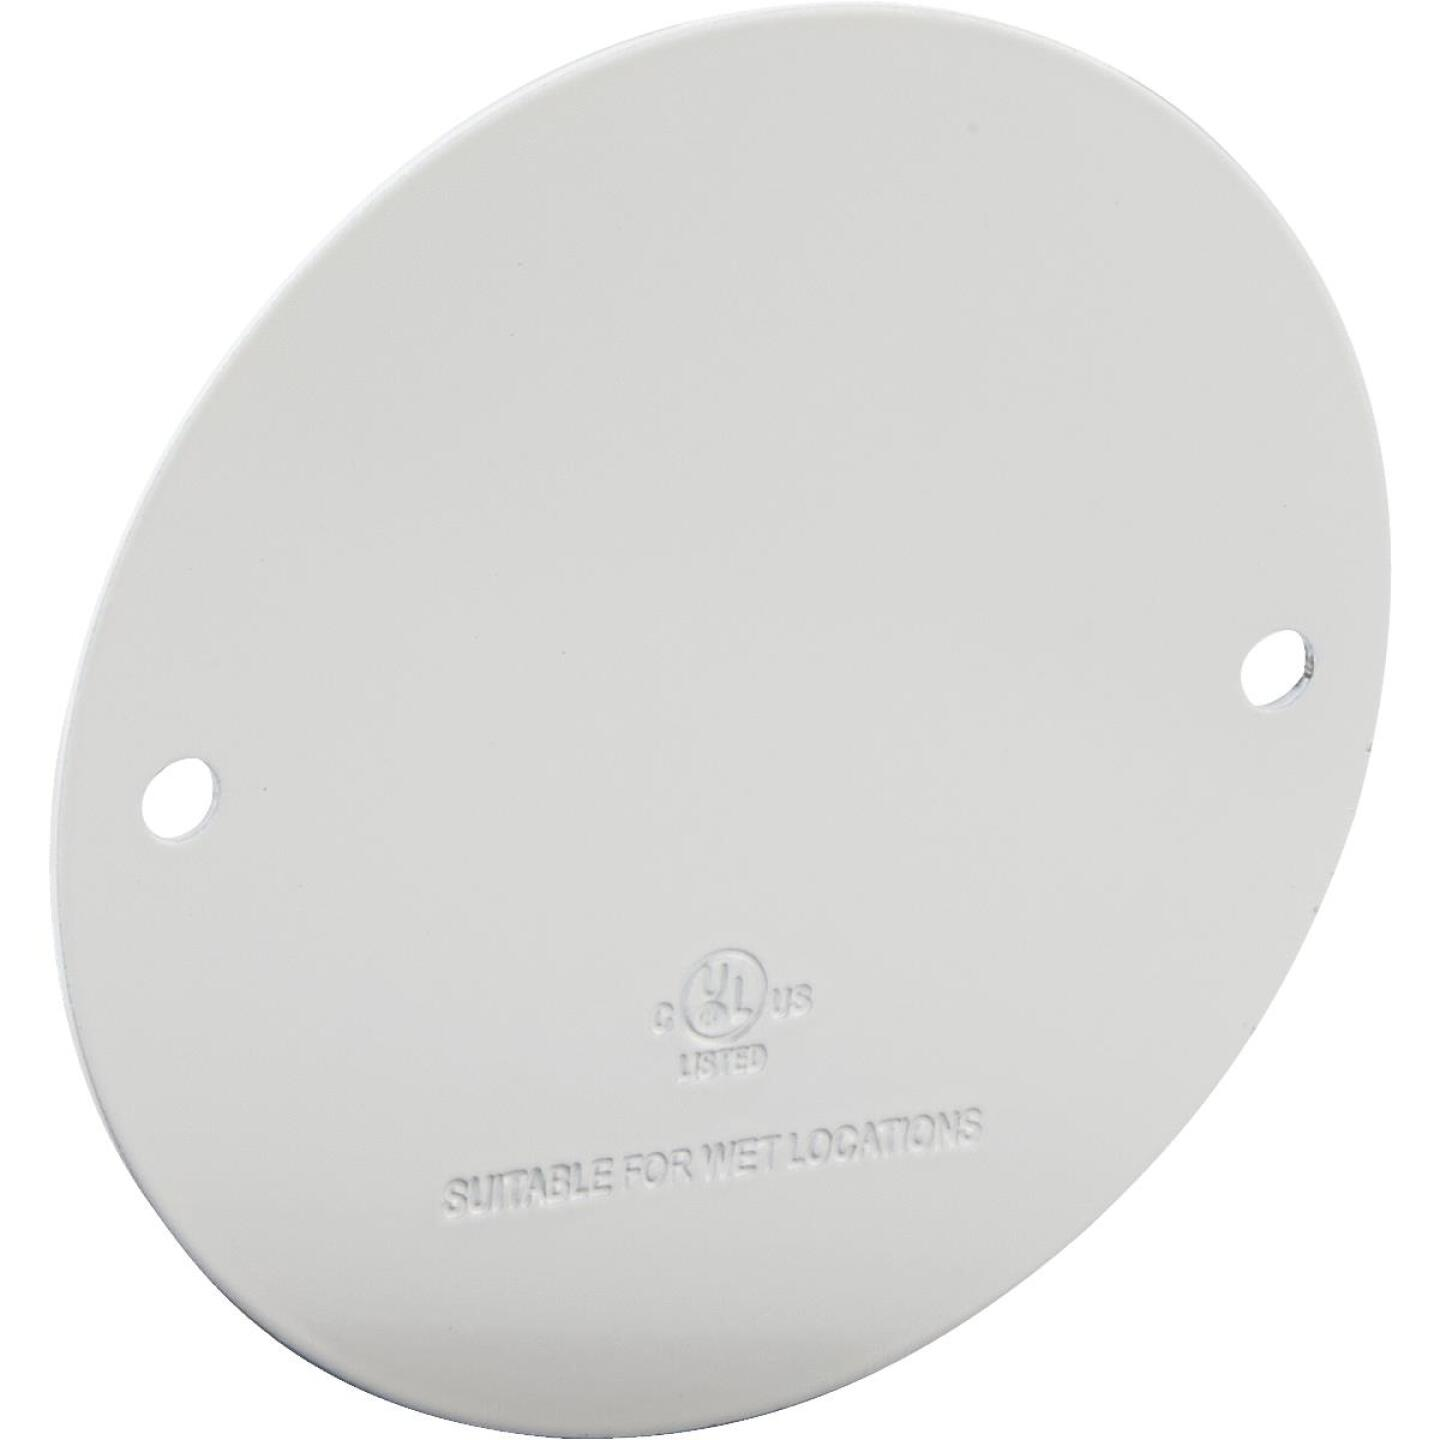 Bell Single Gang Round Die-Cast Metal White Blank Outdoor Box Cover, Shrink Wrapped Image 1